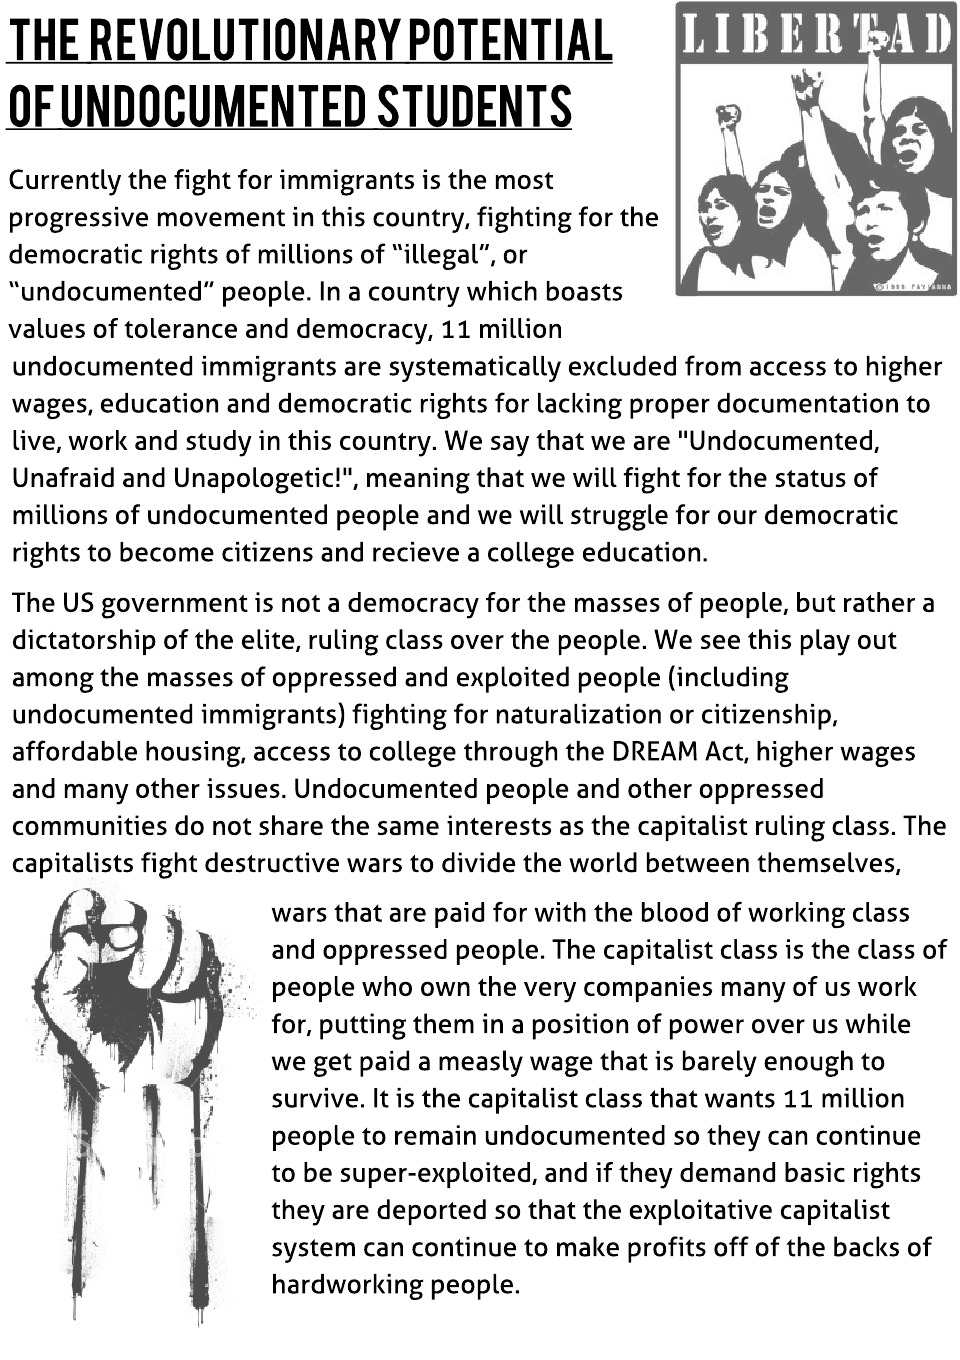 The Revolutionary Potential of Undocumented Students  - Blank (1)